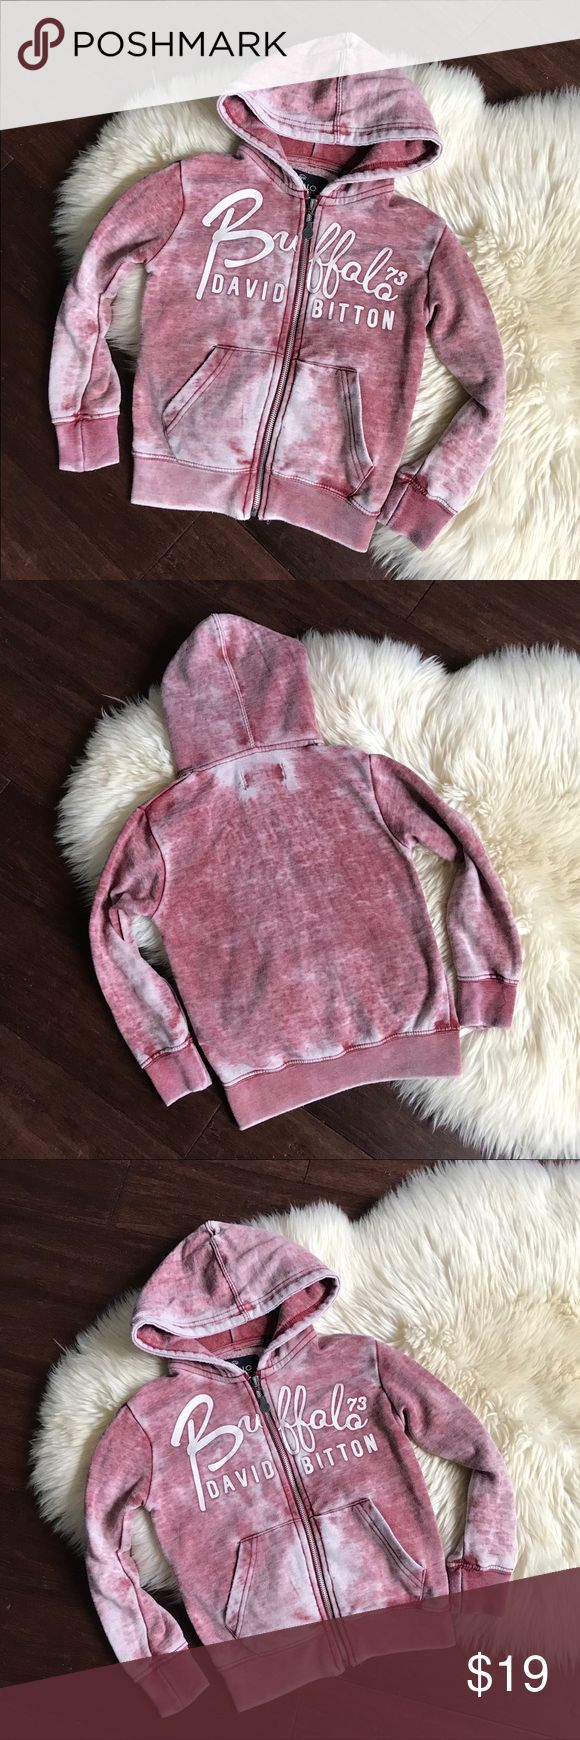 Buffalo David Bitton Distressed Full Zip Hoodie 4 Buffalo David Bitton Distressed Red Full Zip Hoodie   Soft hoodie! It was made to have the washed out distressed look! Great Condition, light pilling.   Size - 4 Buffalo David Bitton Shirts & Tops Sweatshirts & Hoodies